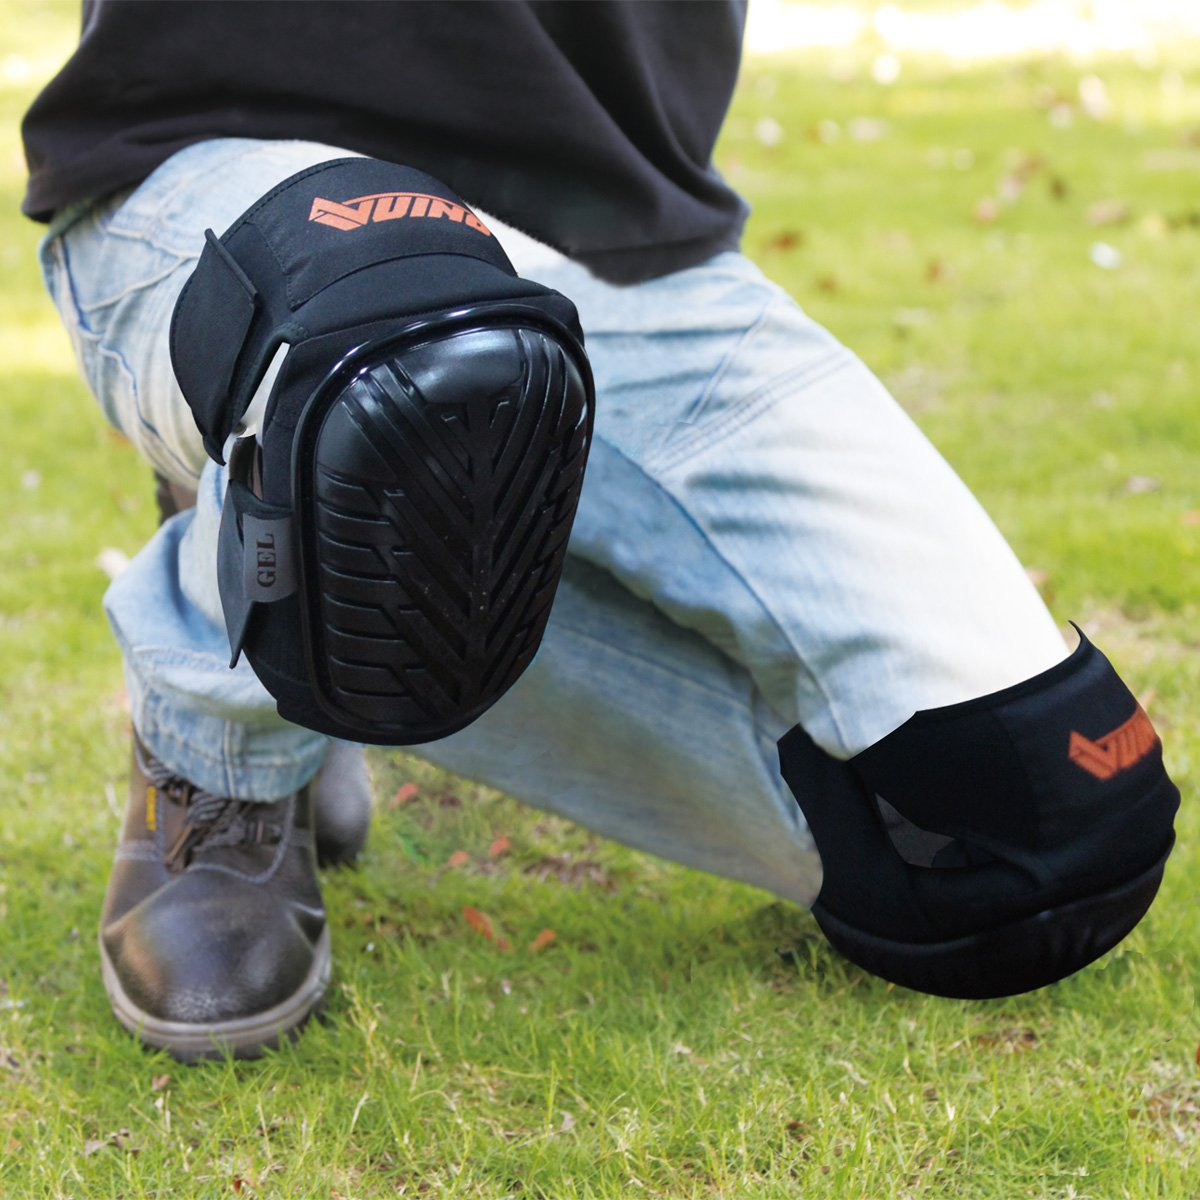 VUINO Professional Heavy Duty EVA Foam Padding Knee Pads with Comfortable Gel Cushion and Adjustable Straps for Working, Gardning, Cleaning, Flooring, Tiling and Construction (Black) by Ningbo Xinweinuo Fanghuyongpin Co.,Ltd (Image #6)